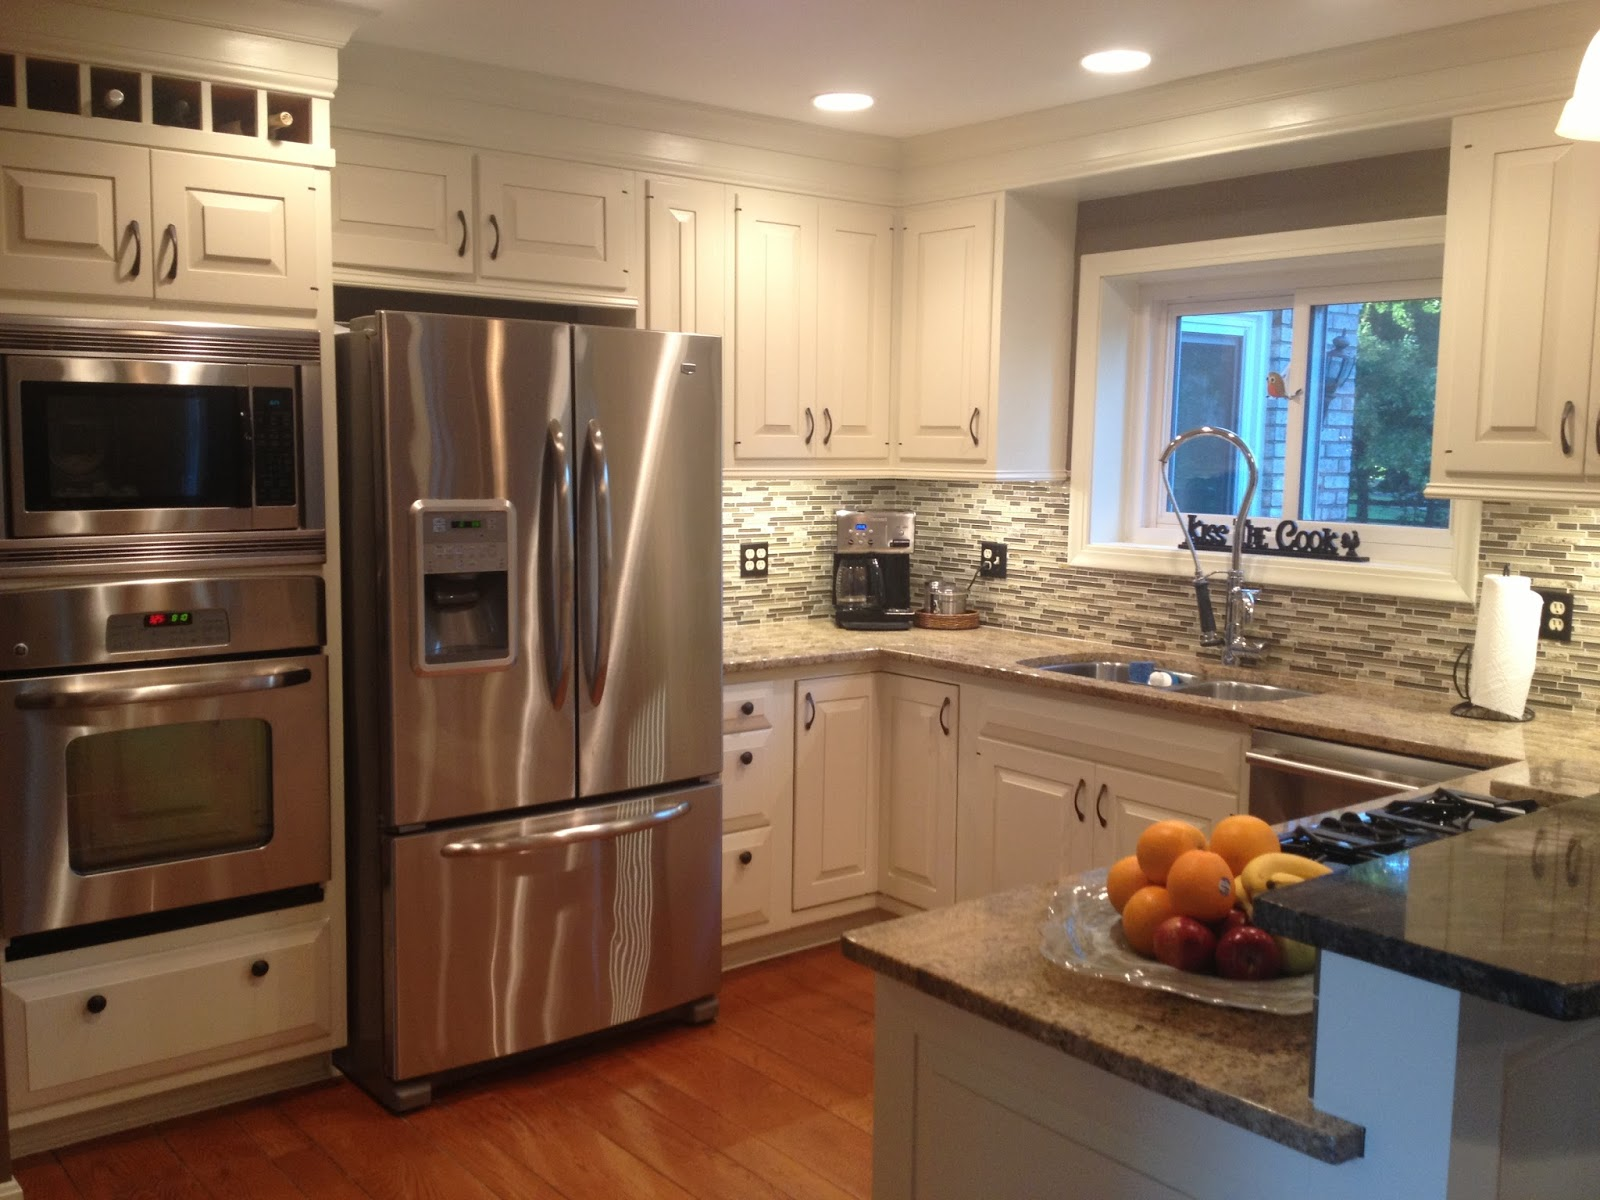 the new kitchen remodel on budget cheap kitchen remodel